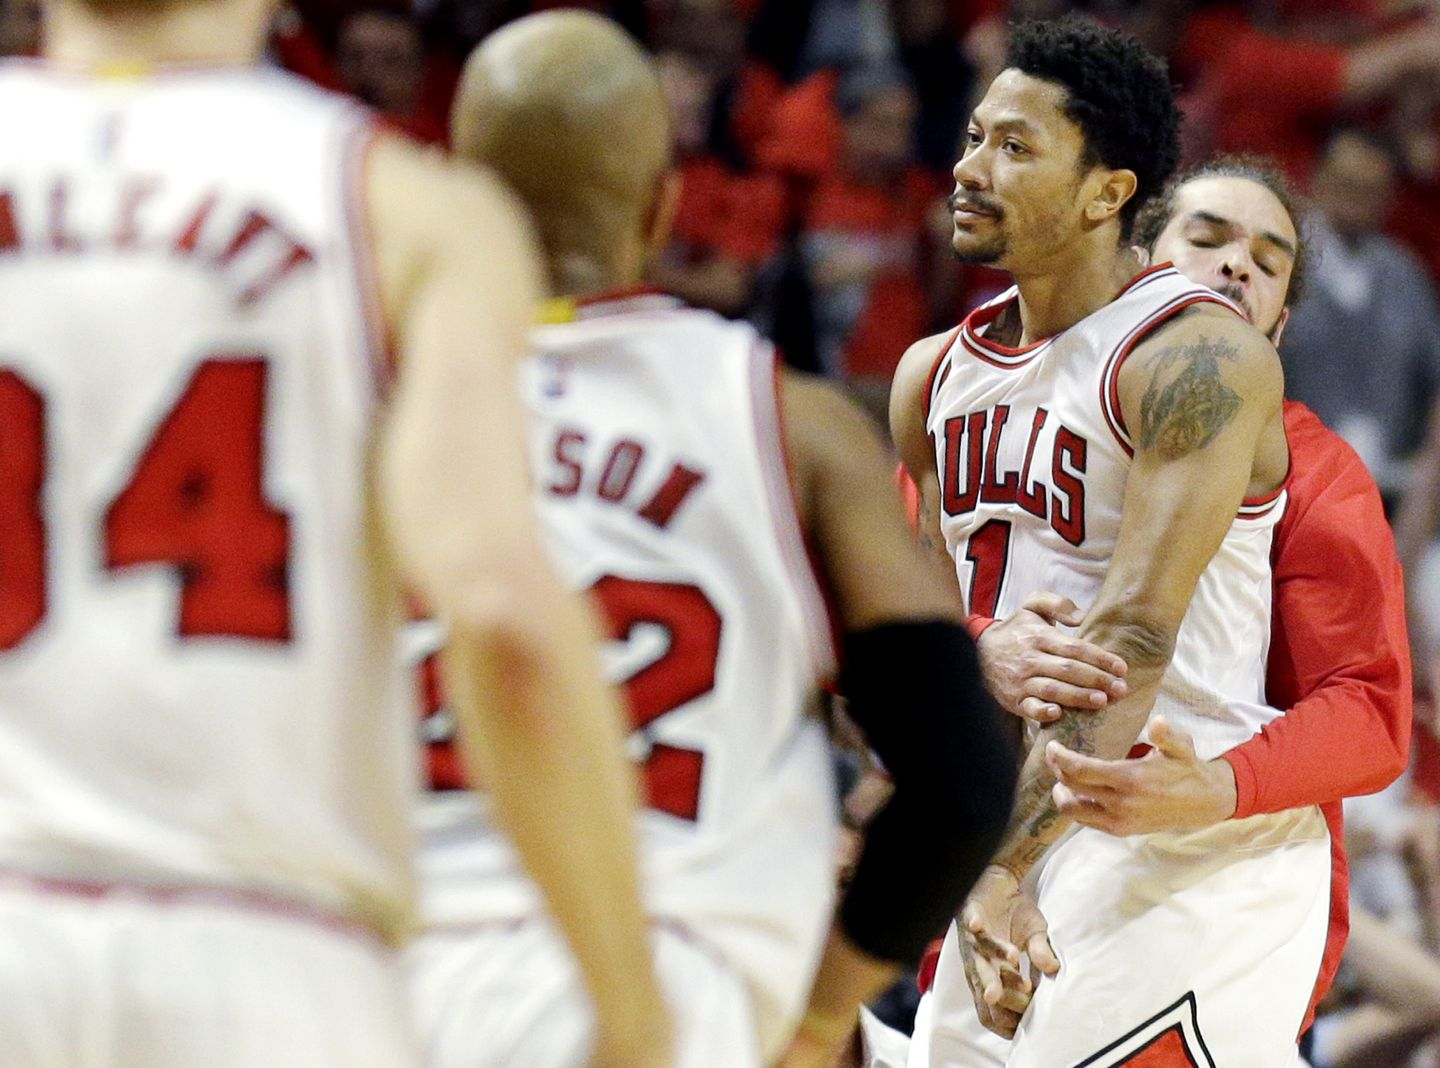 cda8f2381556 Bulls guard Derrick Rose (1) was mobbed by his teammates after hitting the  winning